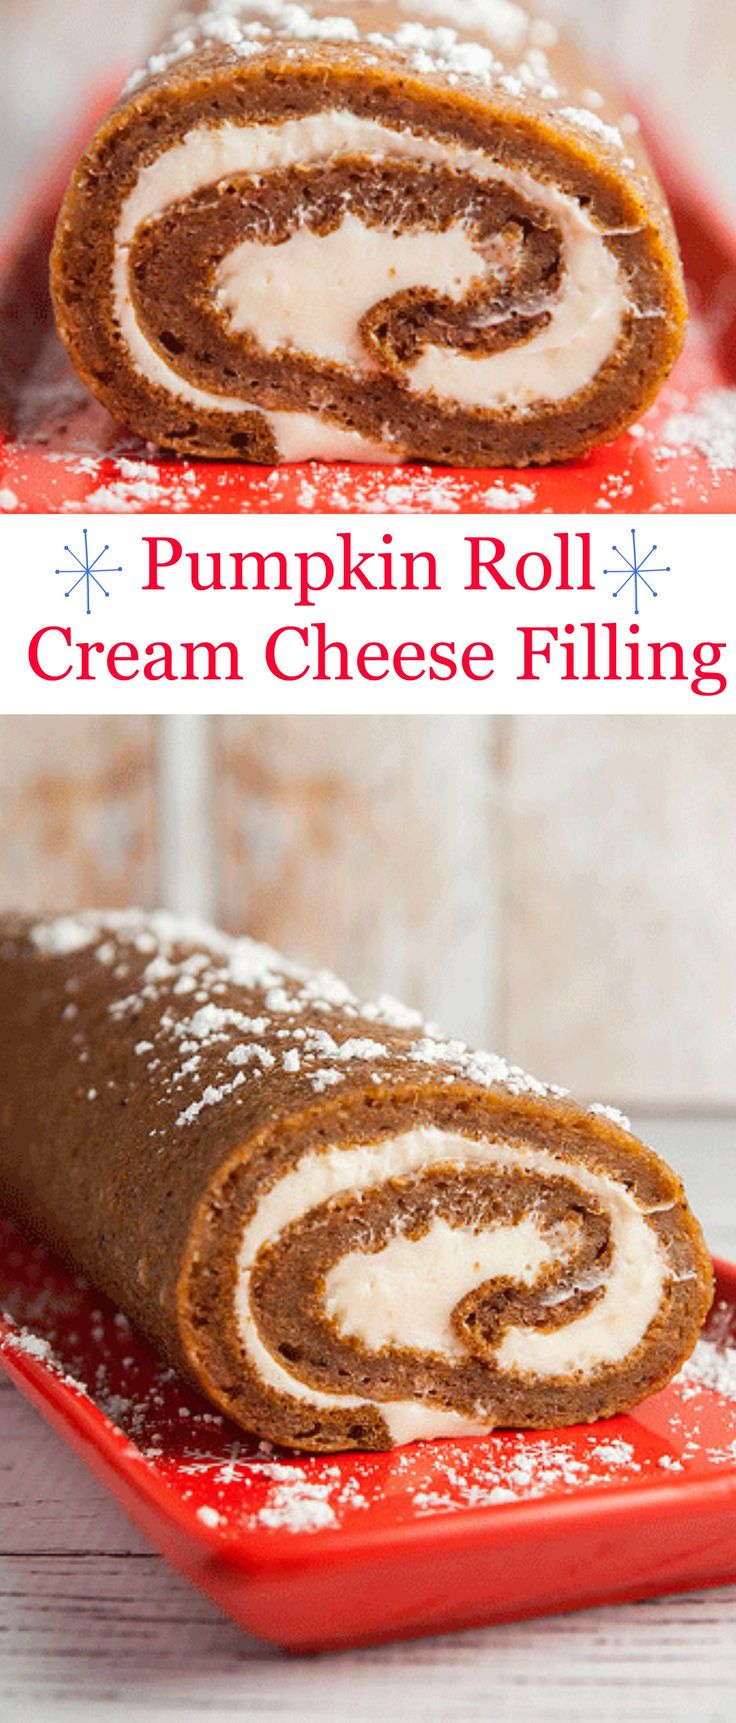 This makes the best Thanksgiving dessert! A delicious and moist Pumpkin Roll with cream cheese filling inside.